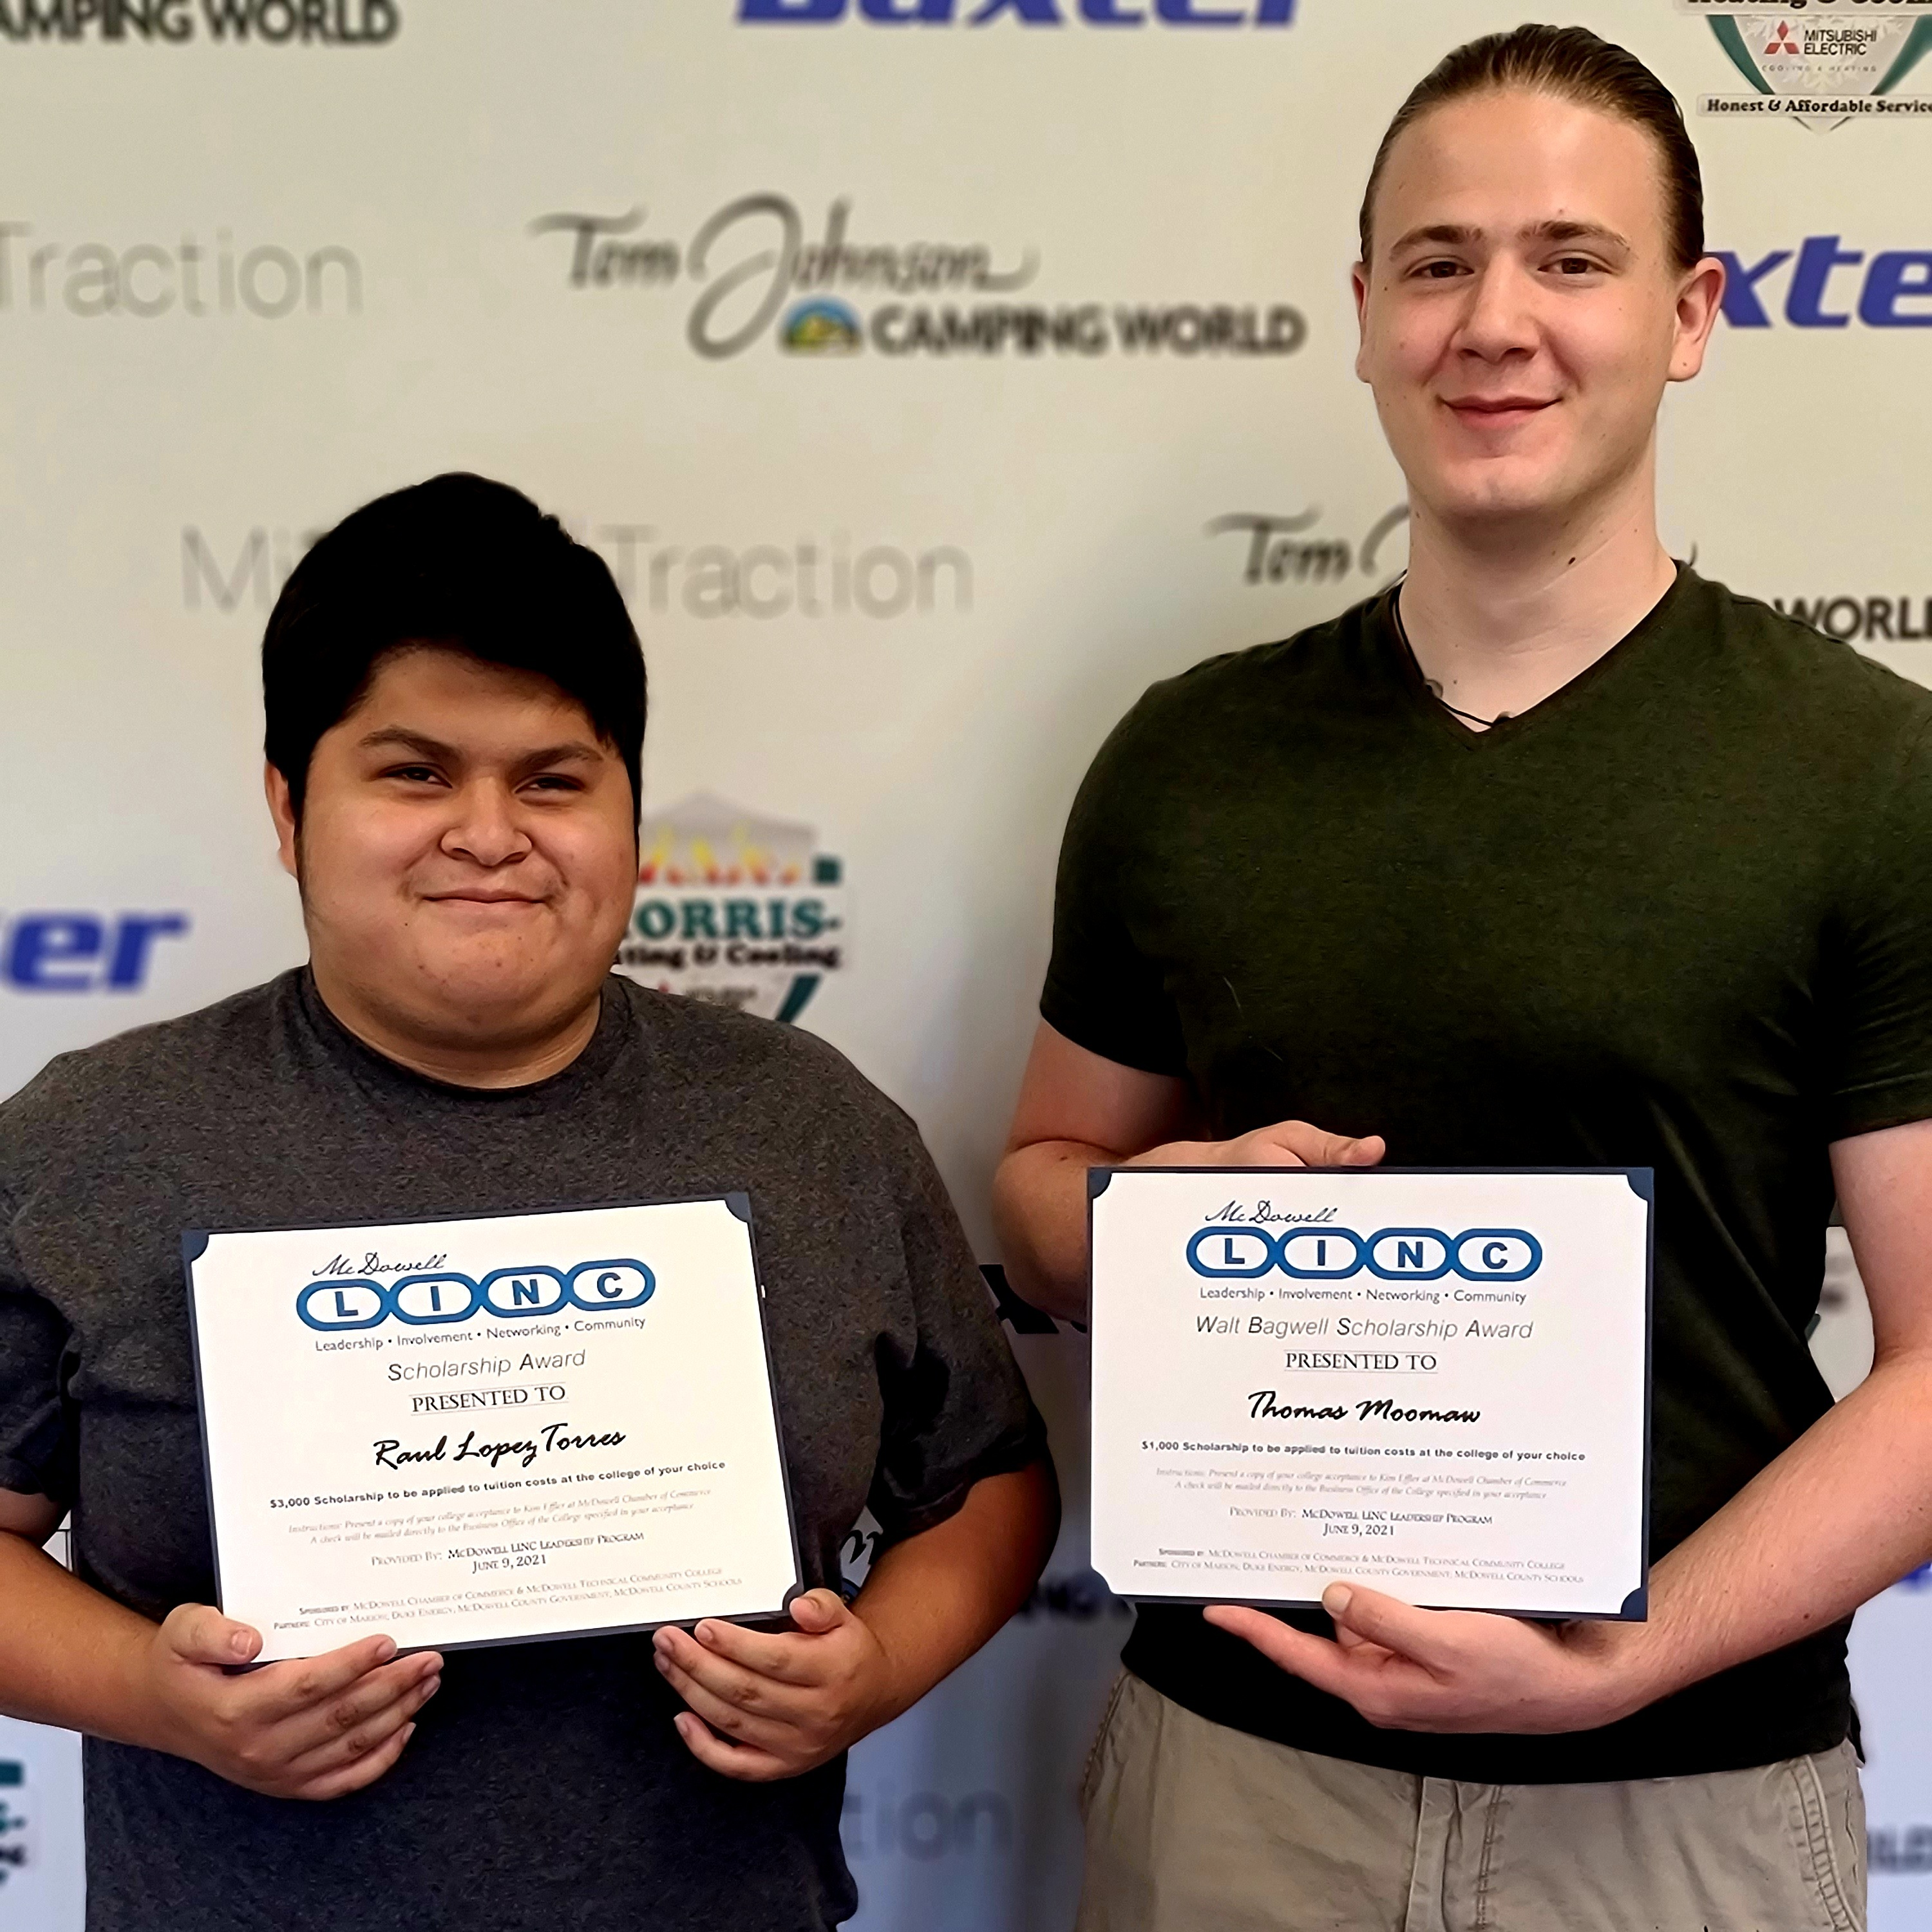 McDowell Chamber Student LINC Scholarship recipients Raul Lopez Torres and Thomas Moomaw celebrate their awards.